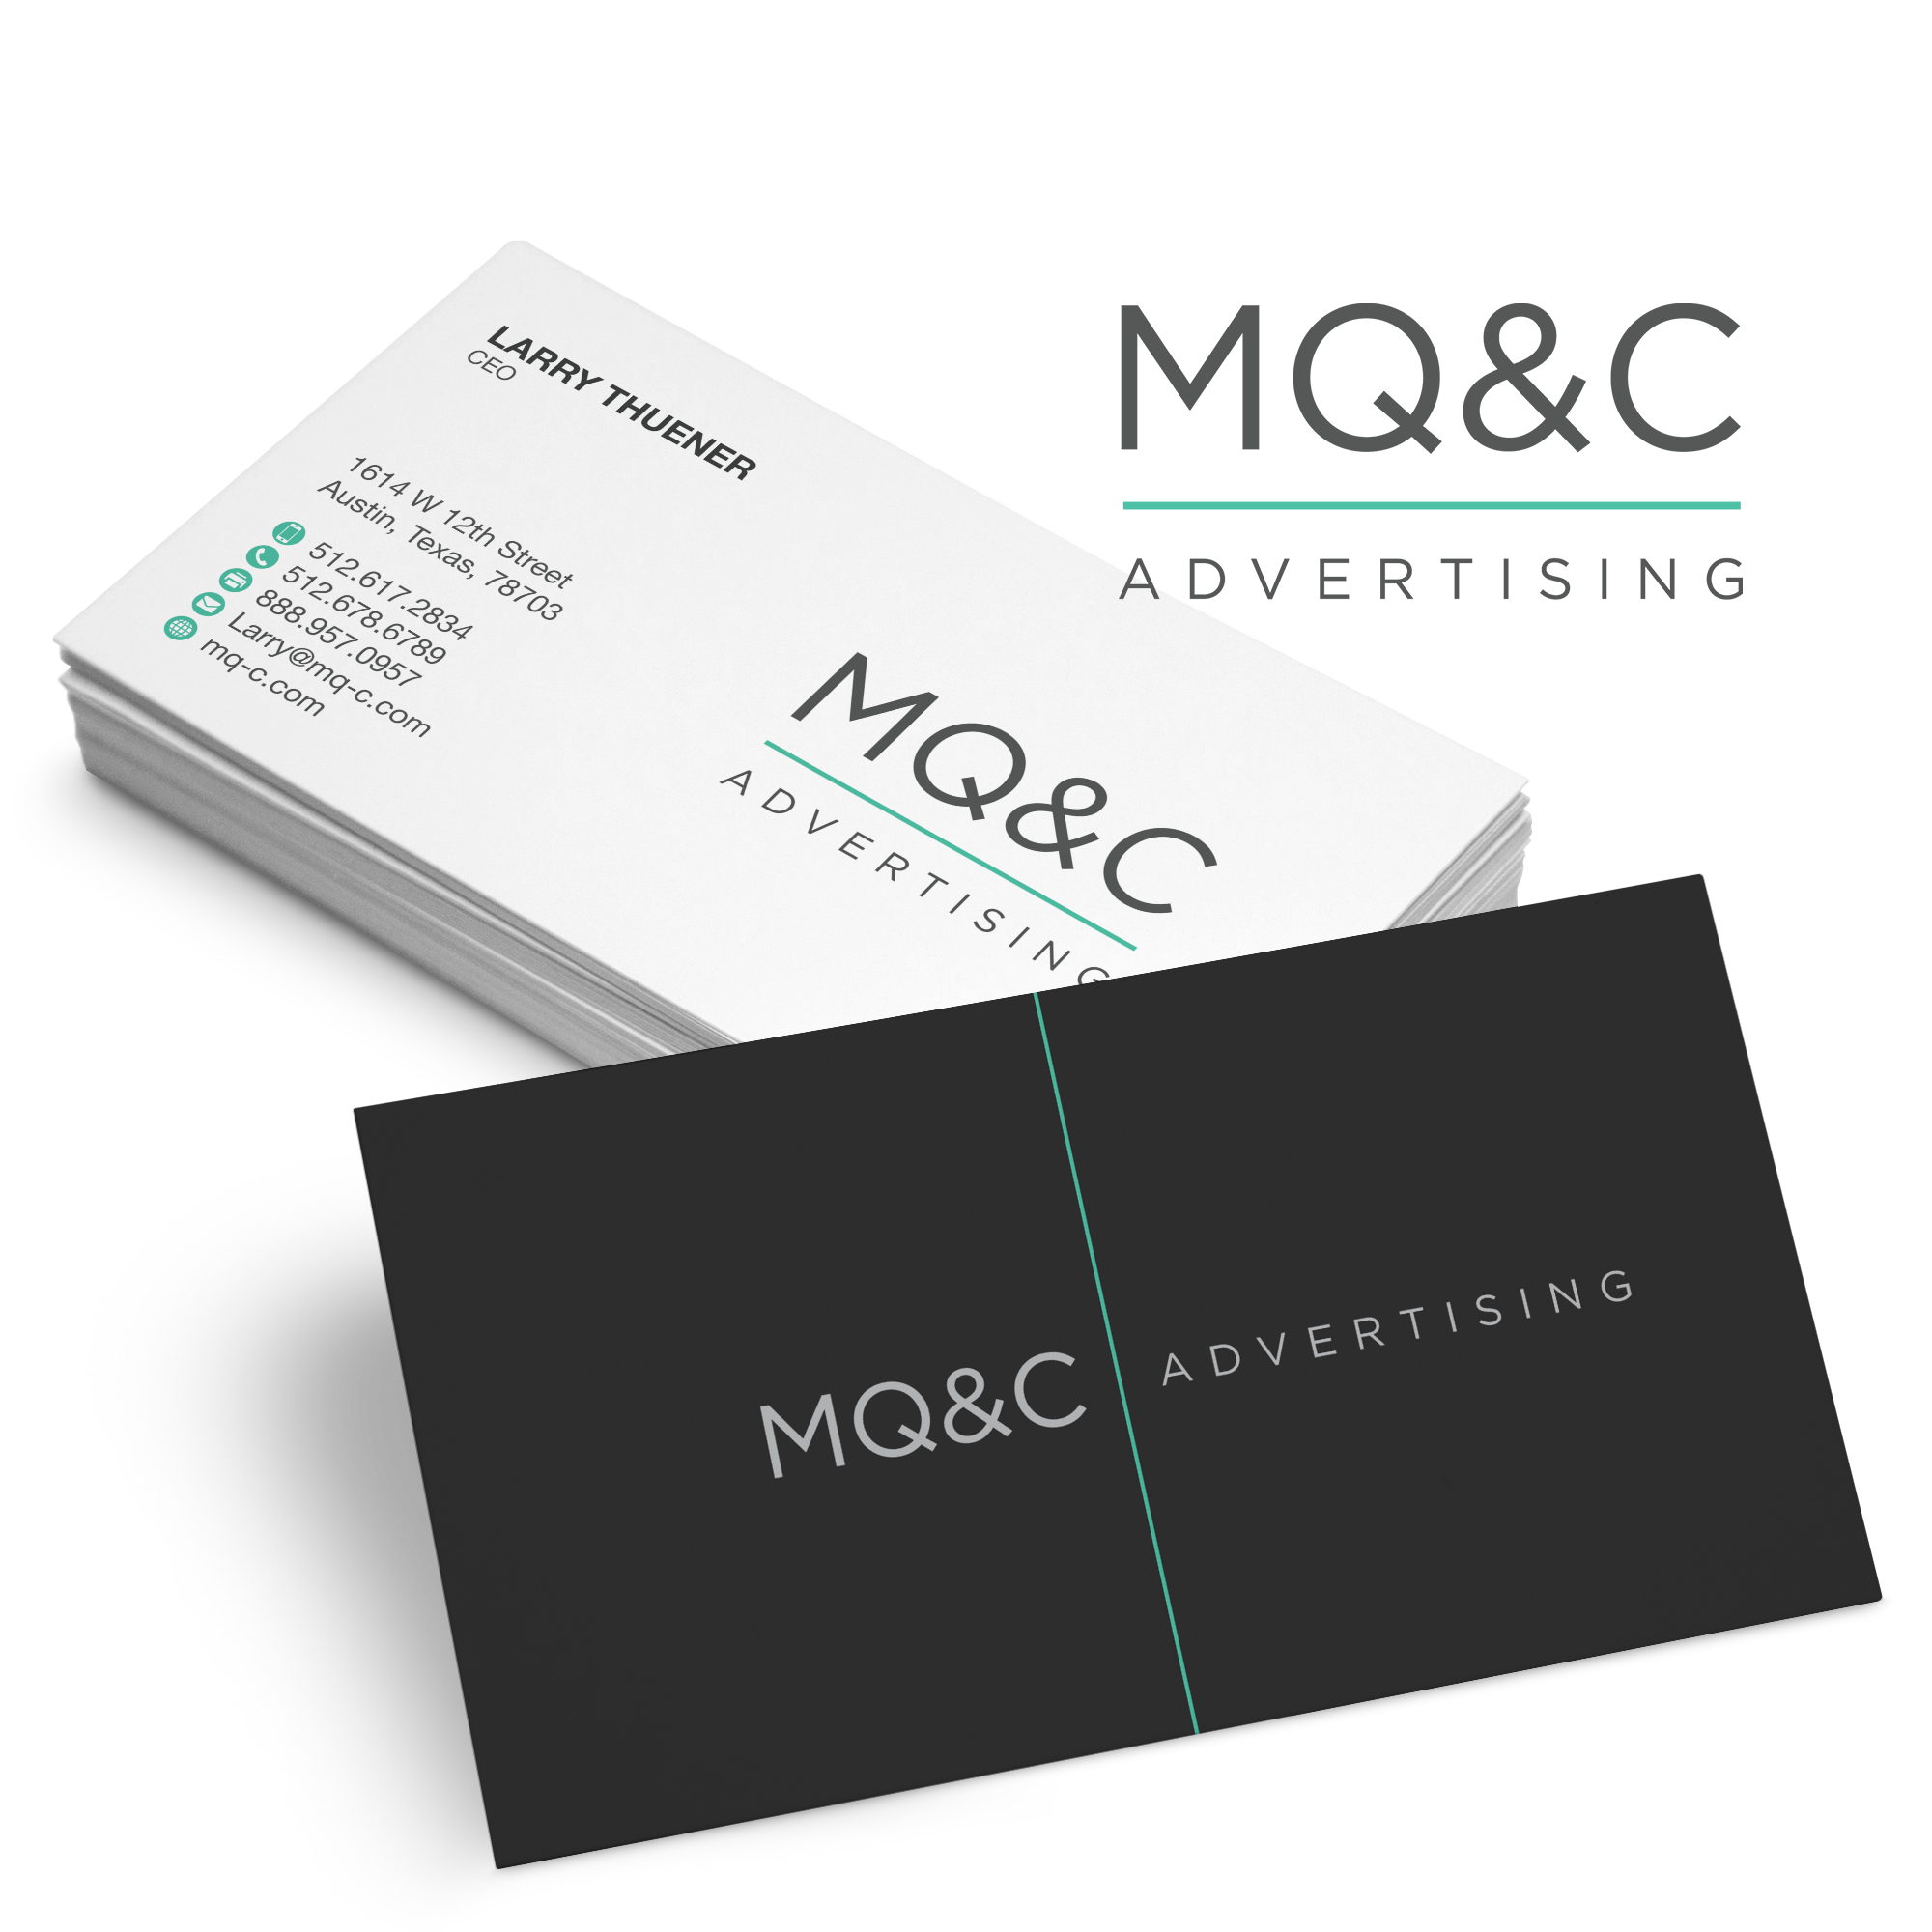 Logo business cards juvecenitdelacabrera business card logos get a custom logo for business cards 99designs reheart